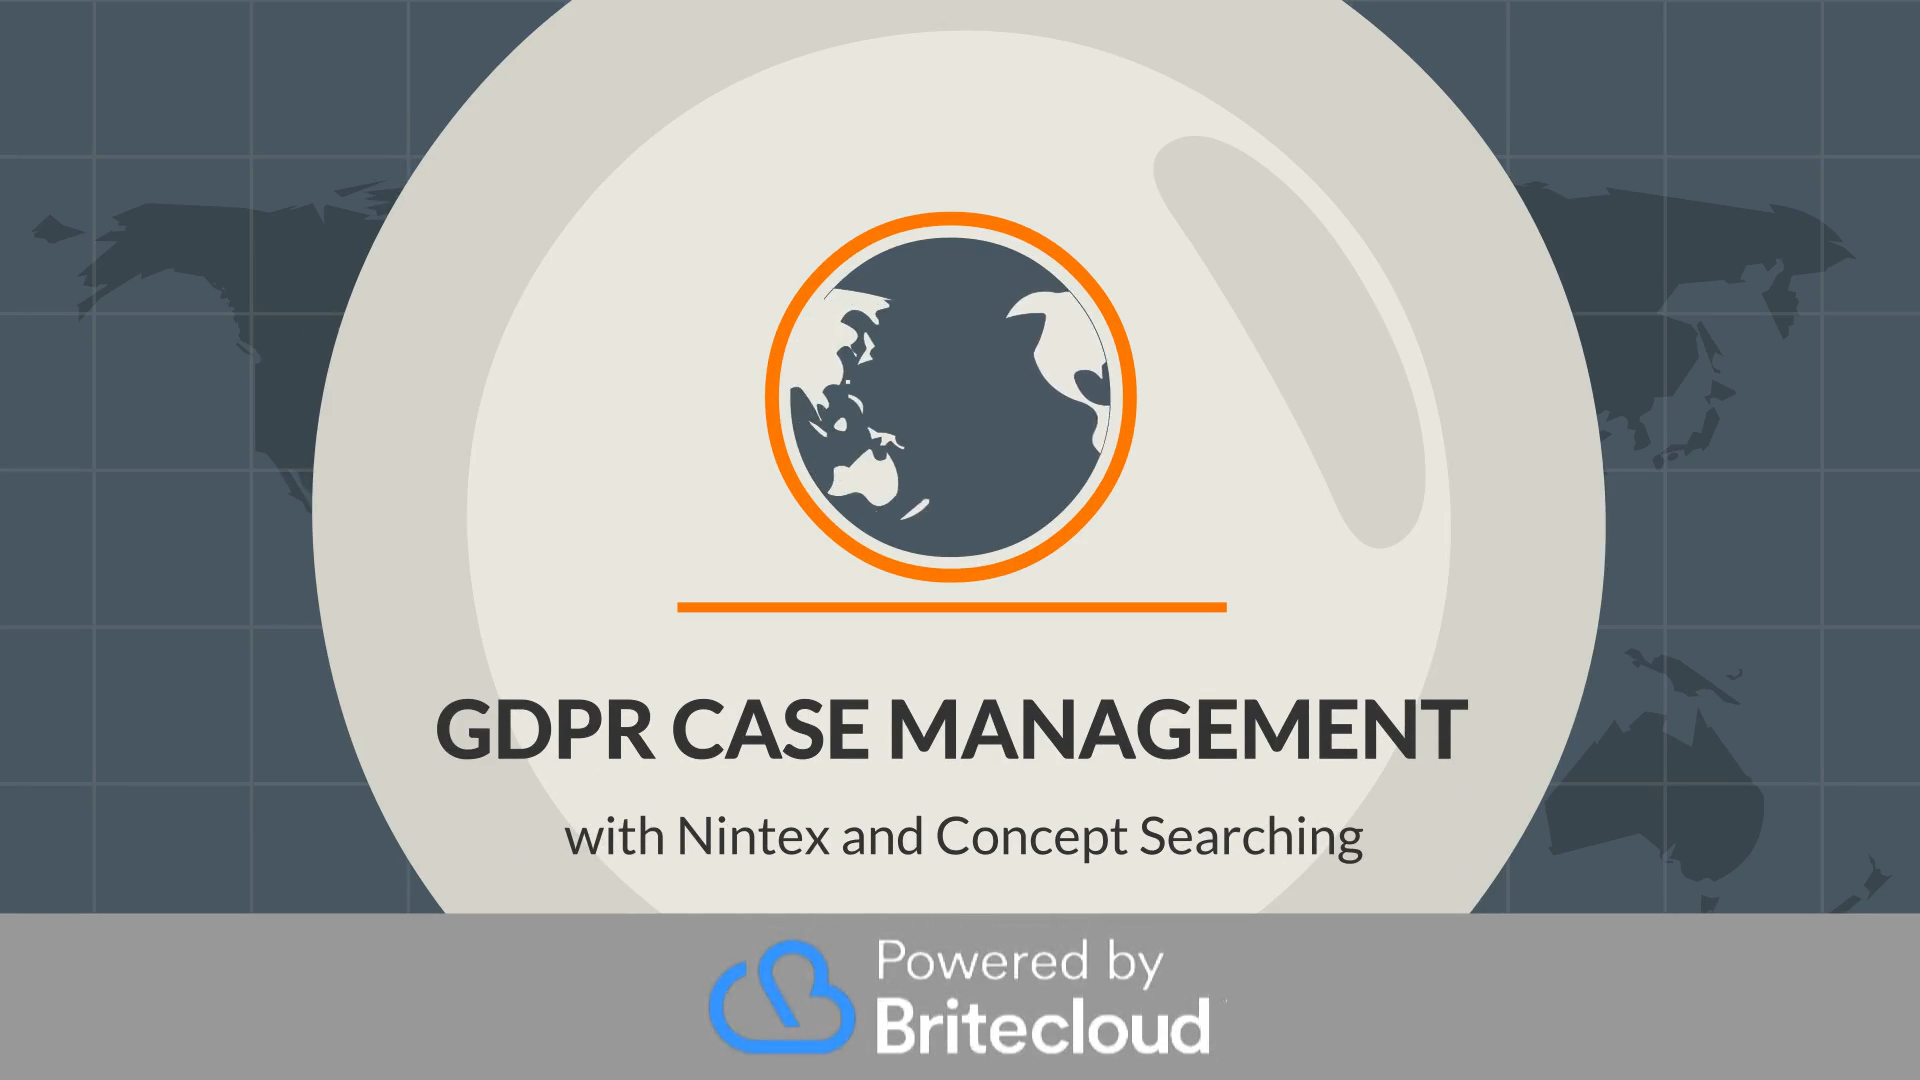 Get GDPR Compliant Fast with Britecloud Case Management and Compliance from Nintex and Concept Searching